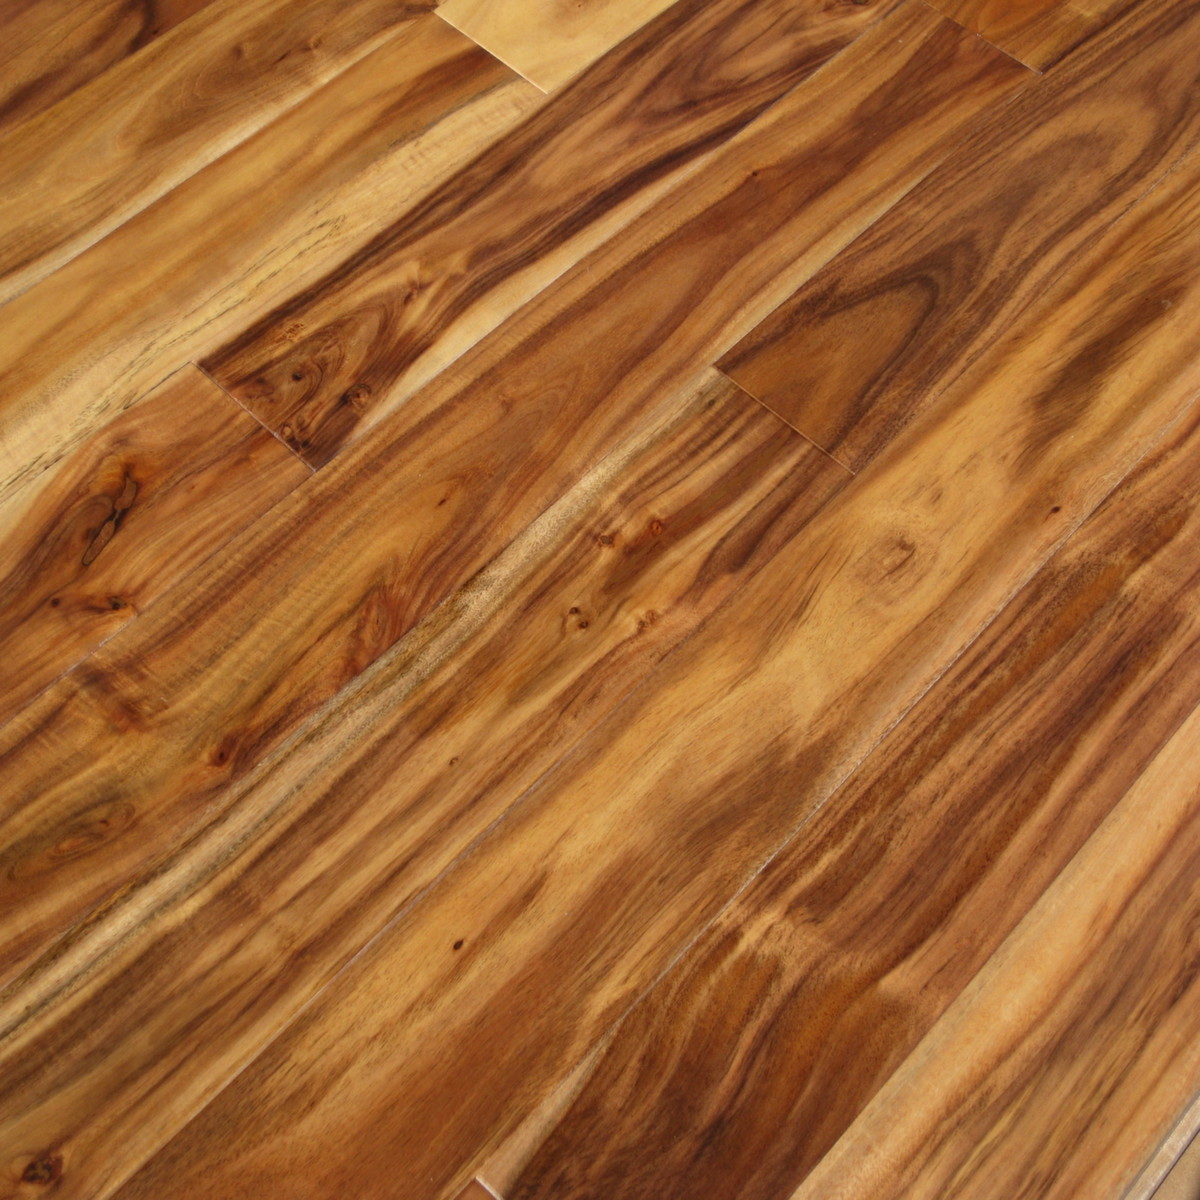 Acacia natural hand scraped hardwood flooring acacia for Hardwood floors or carpet